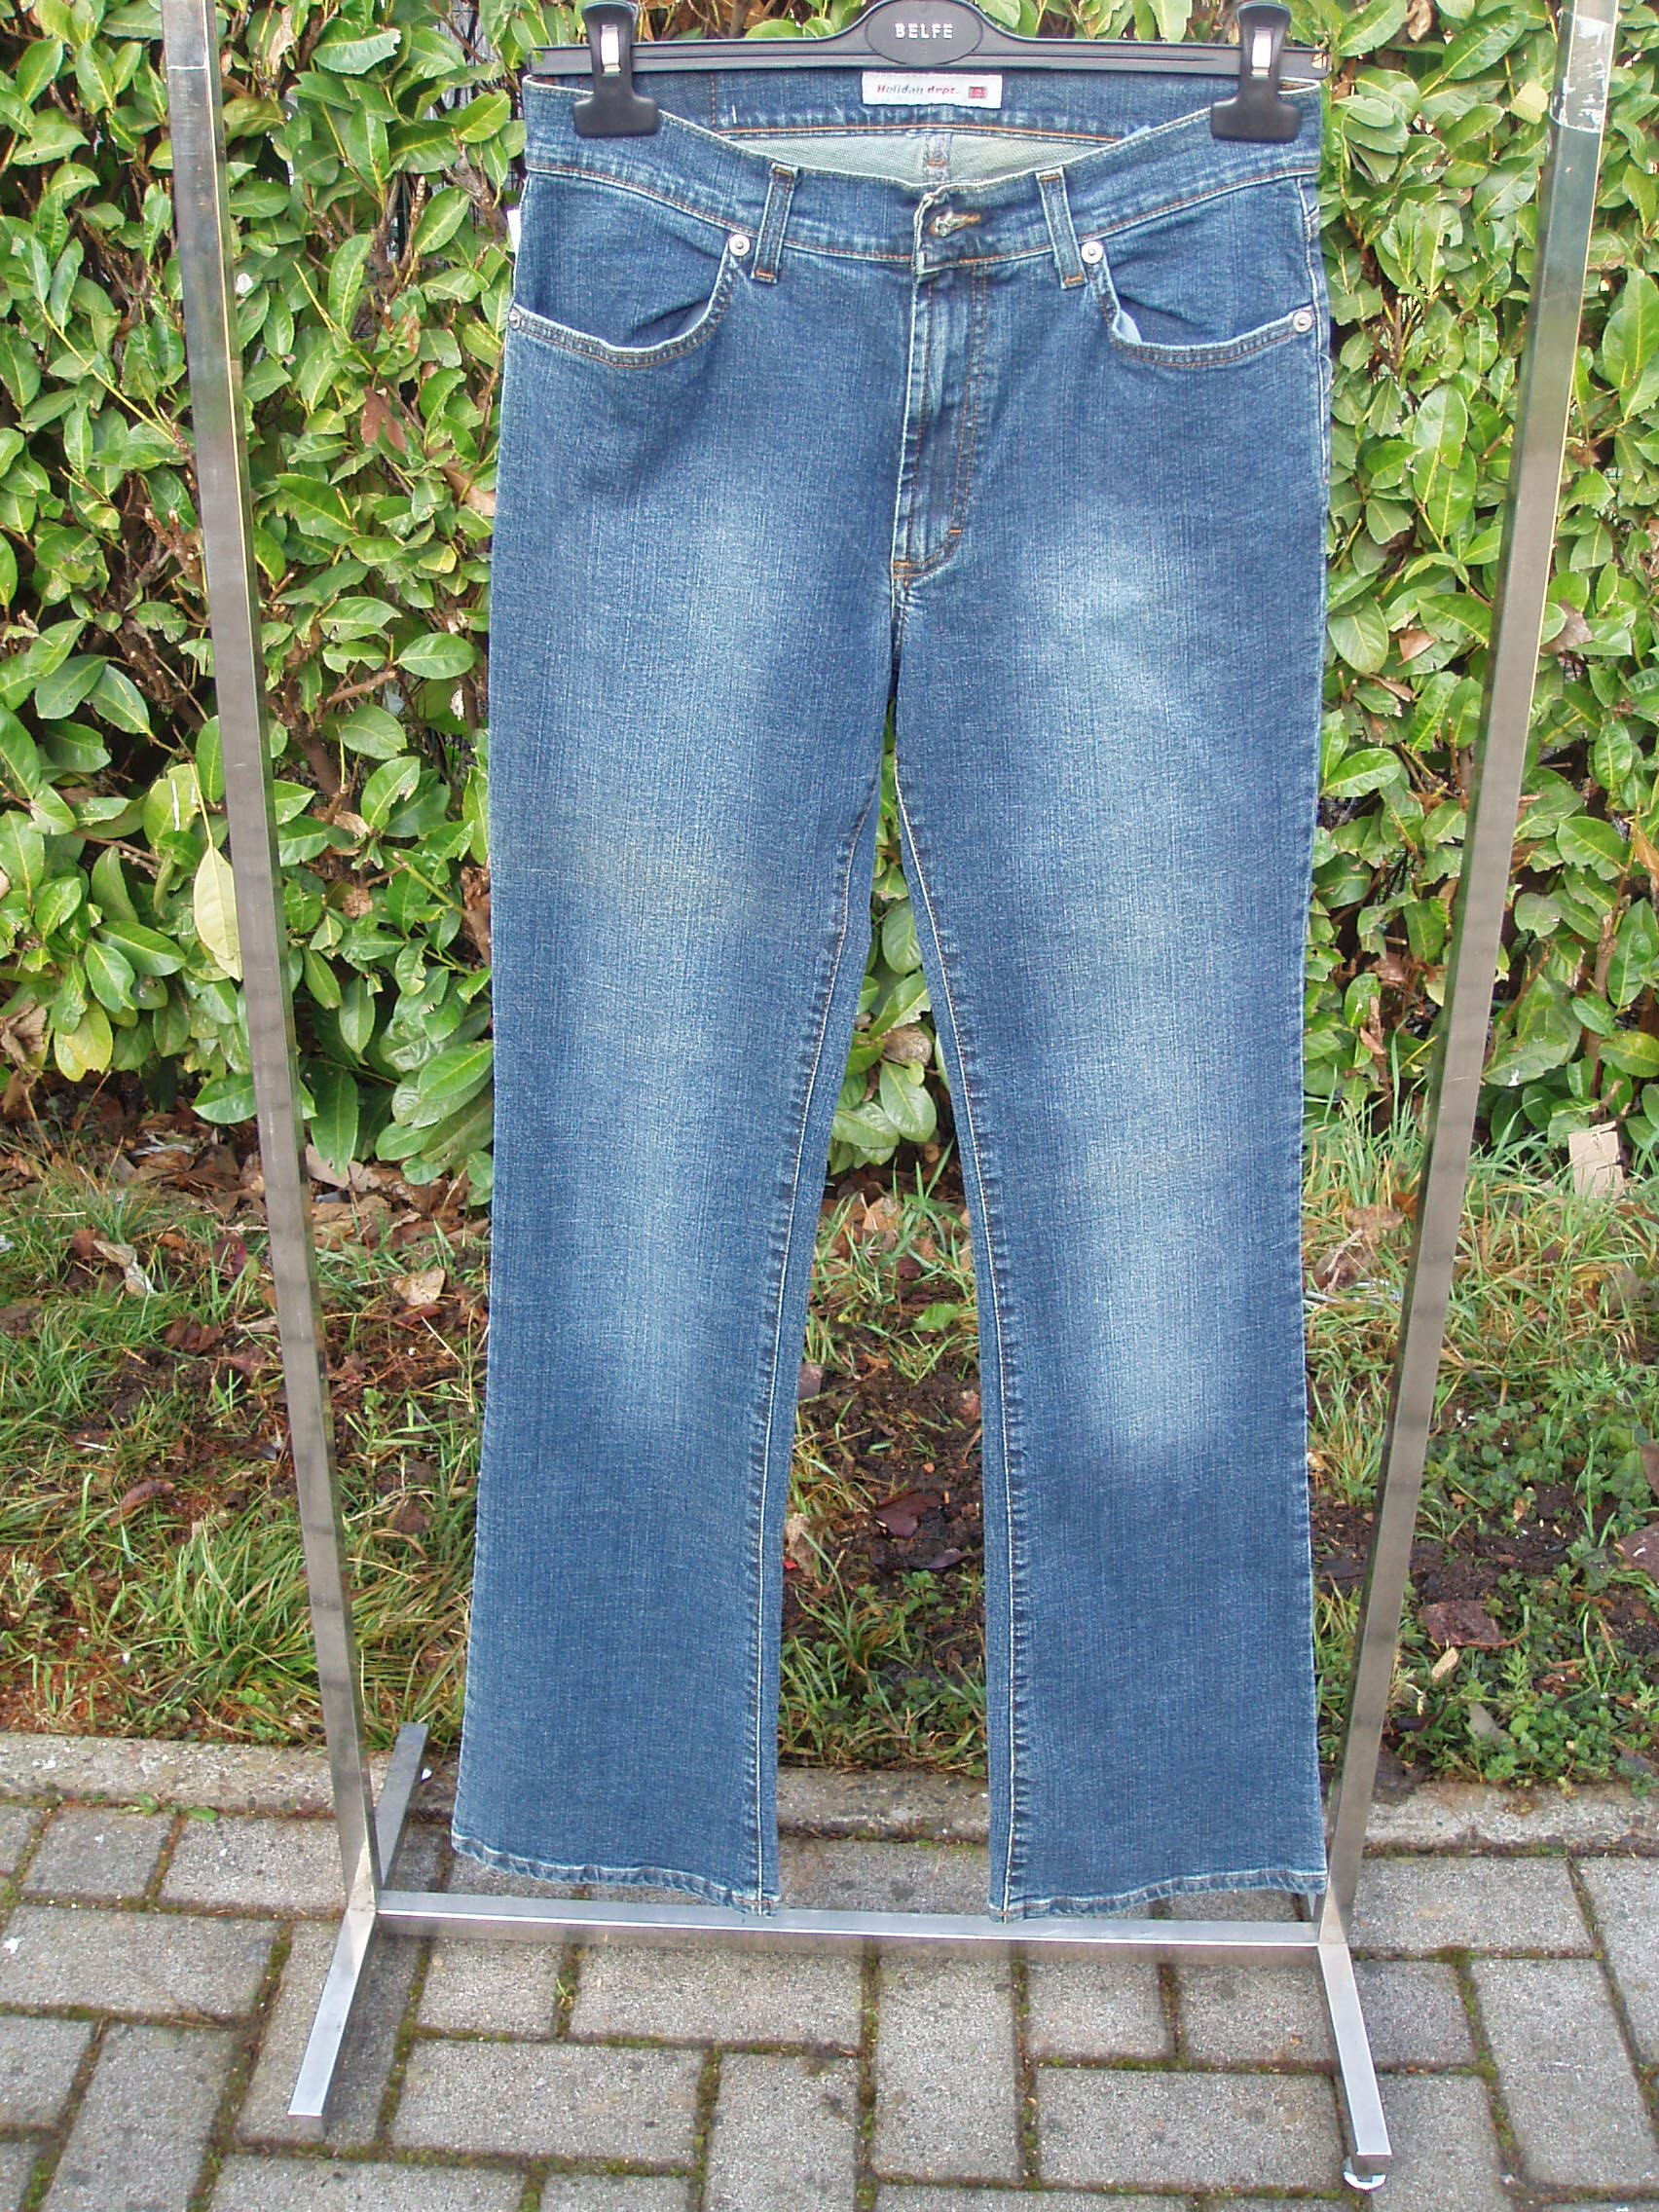 official photos f80f9 49c64 pantaloni jeans donna invernali usati – Il Tendone solidale ...